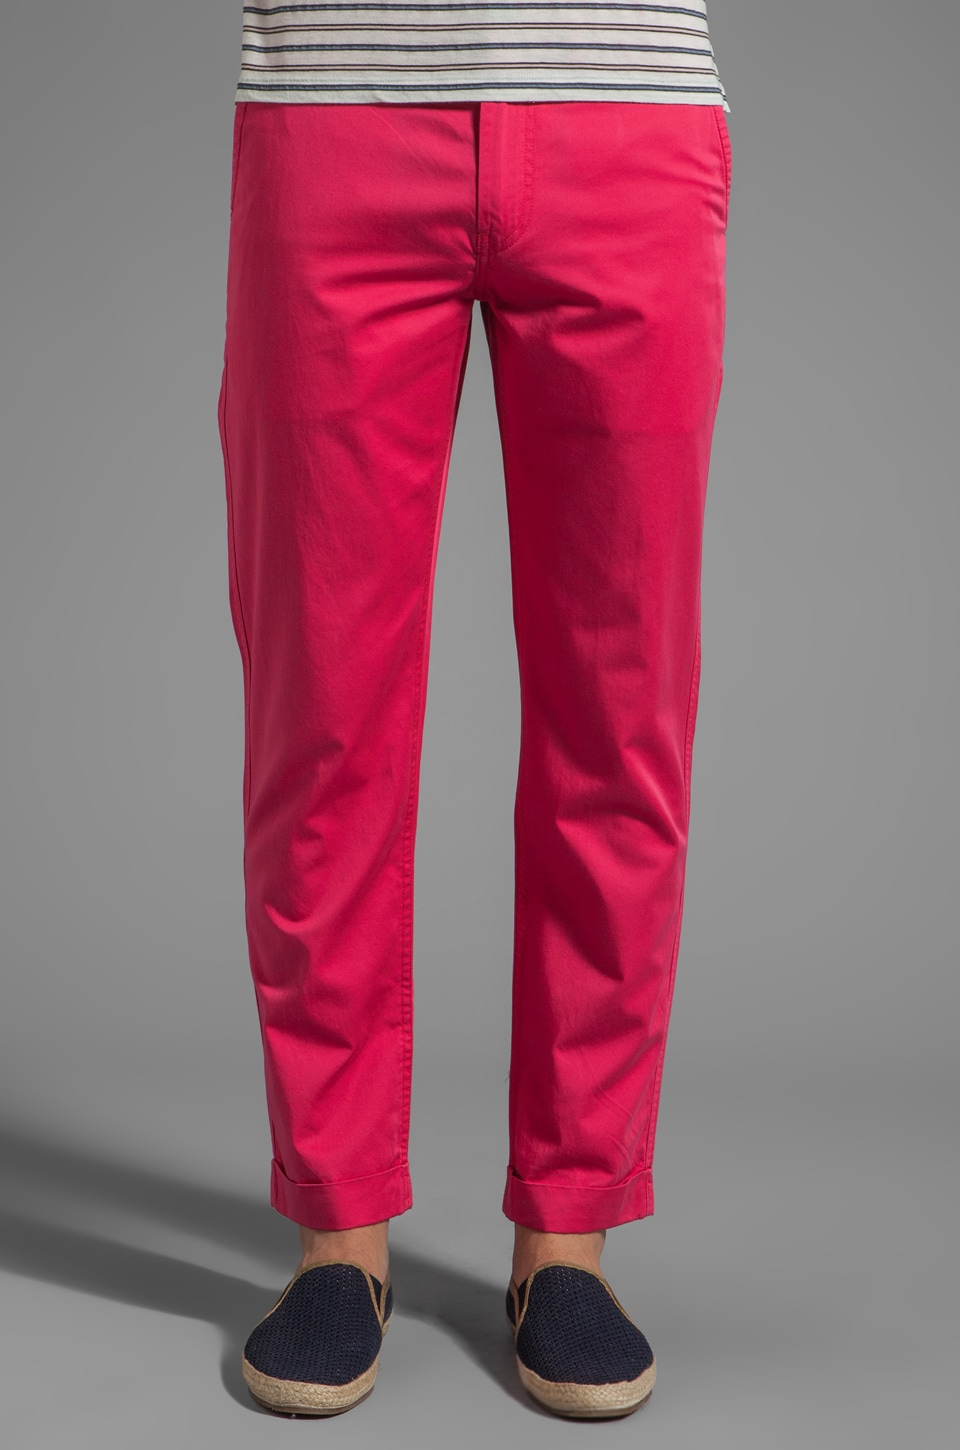 Marc by Marc Jacobs Beach Cotton Pant in Azalea Pink